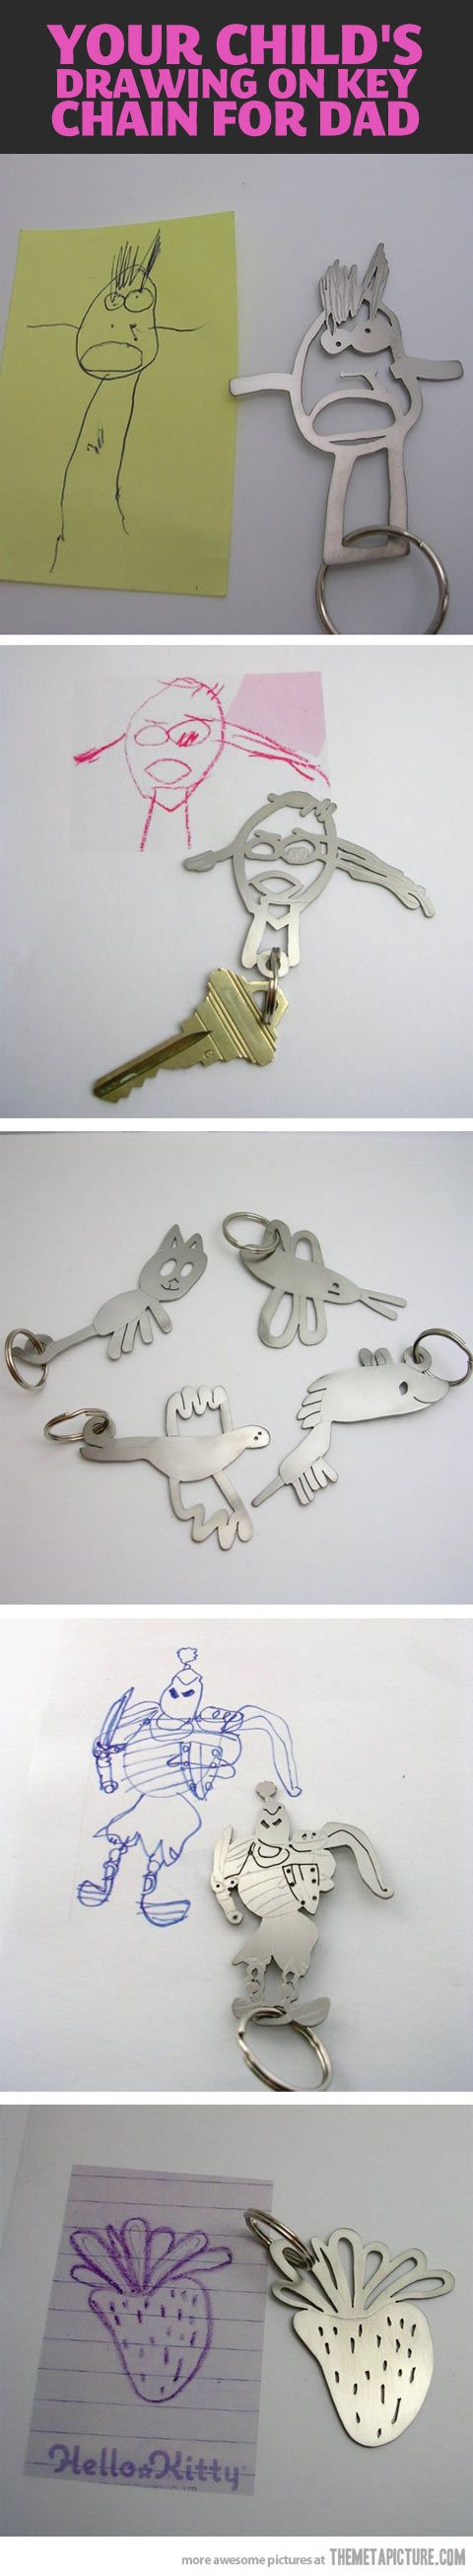 Kids' drawings made into keychains, charms, etc. ~ I don't have any kids, but thought this was cute